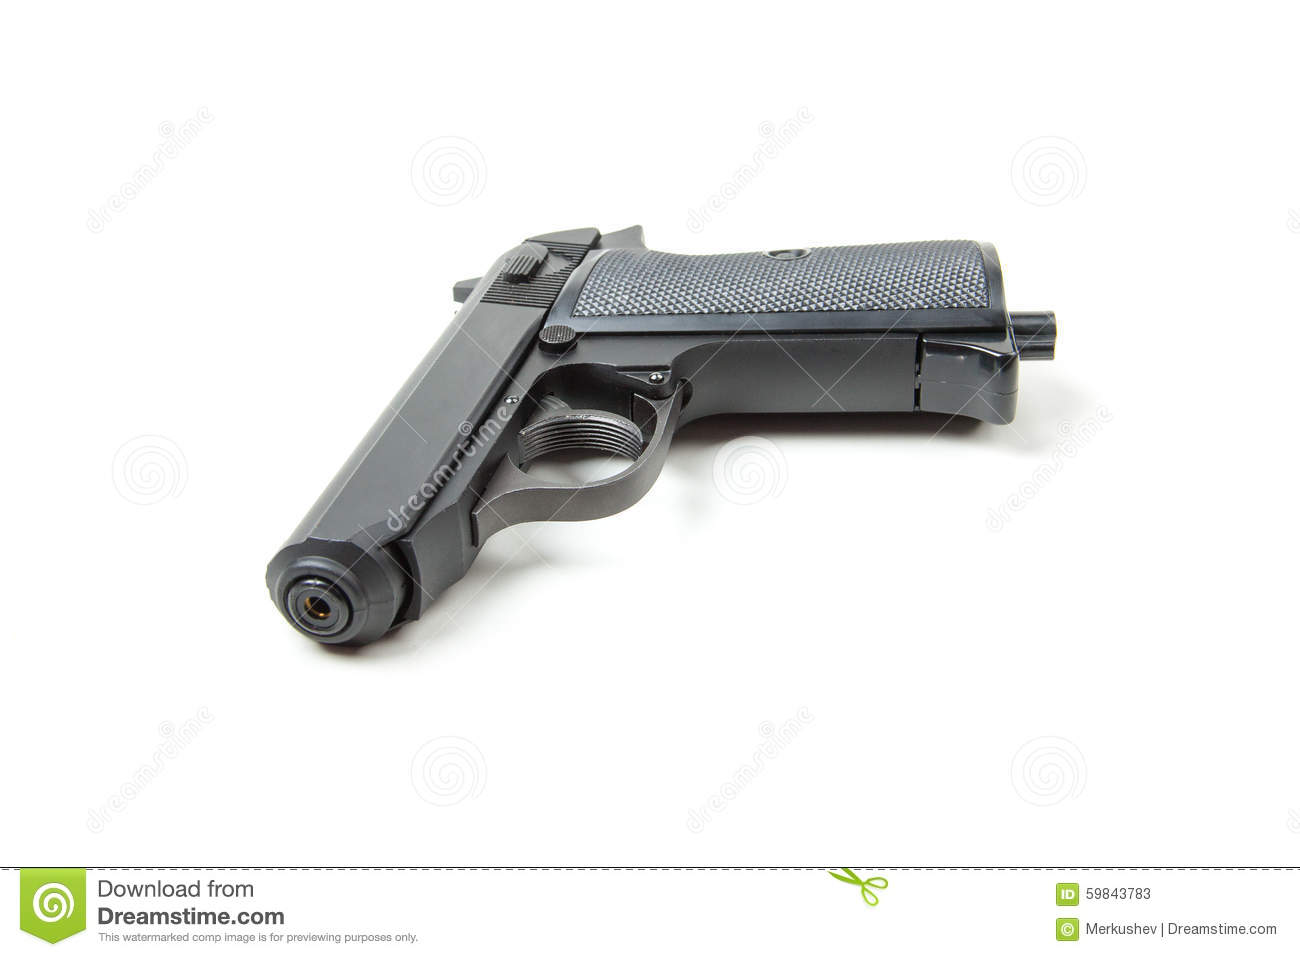 gun white background - photo #39